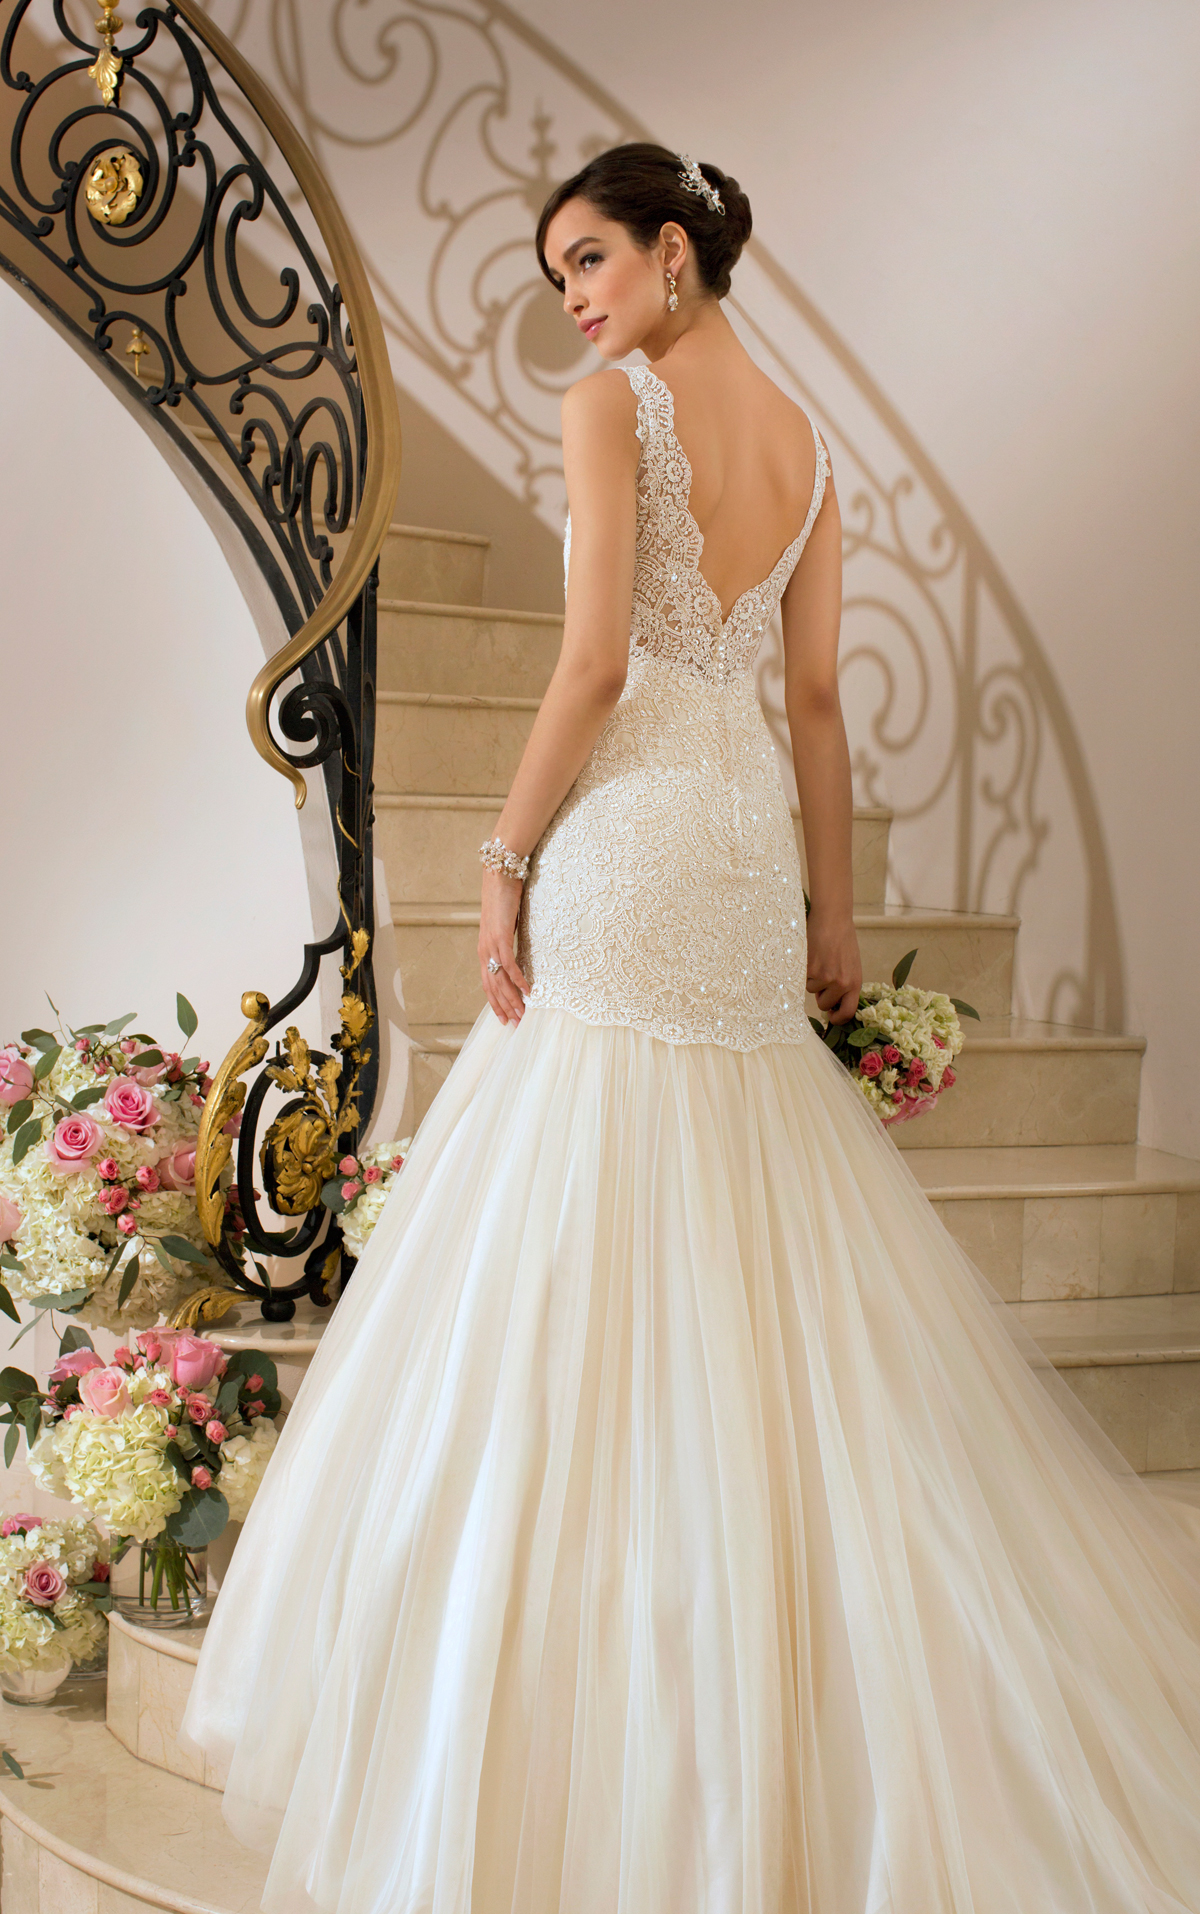 stella-york-wedding-dresses-2014-19-01152014